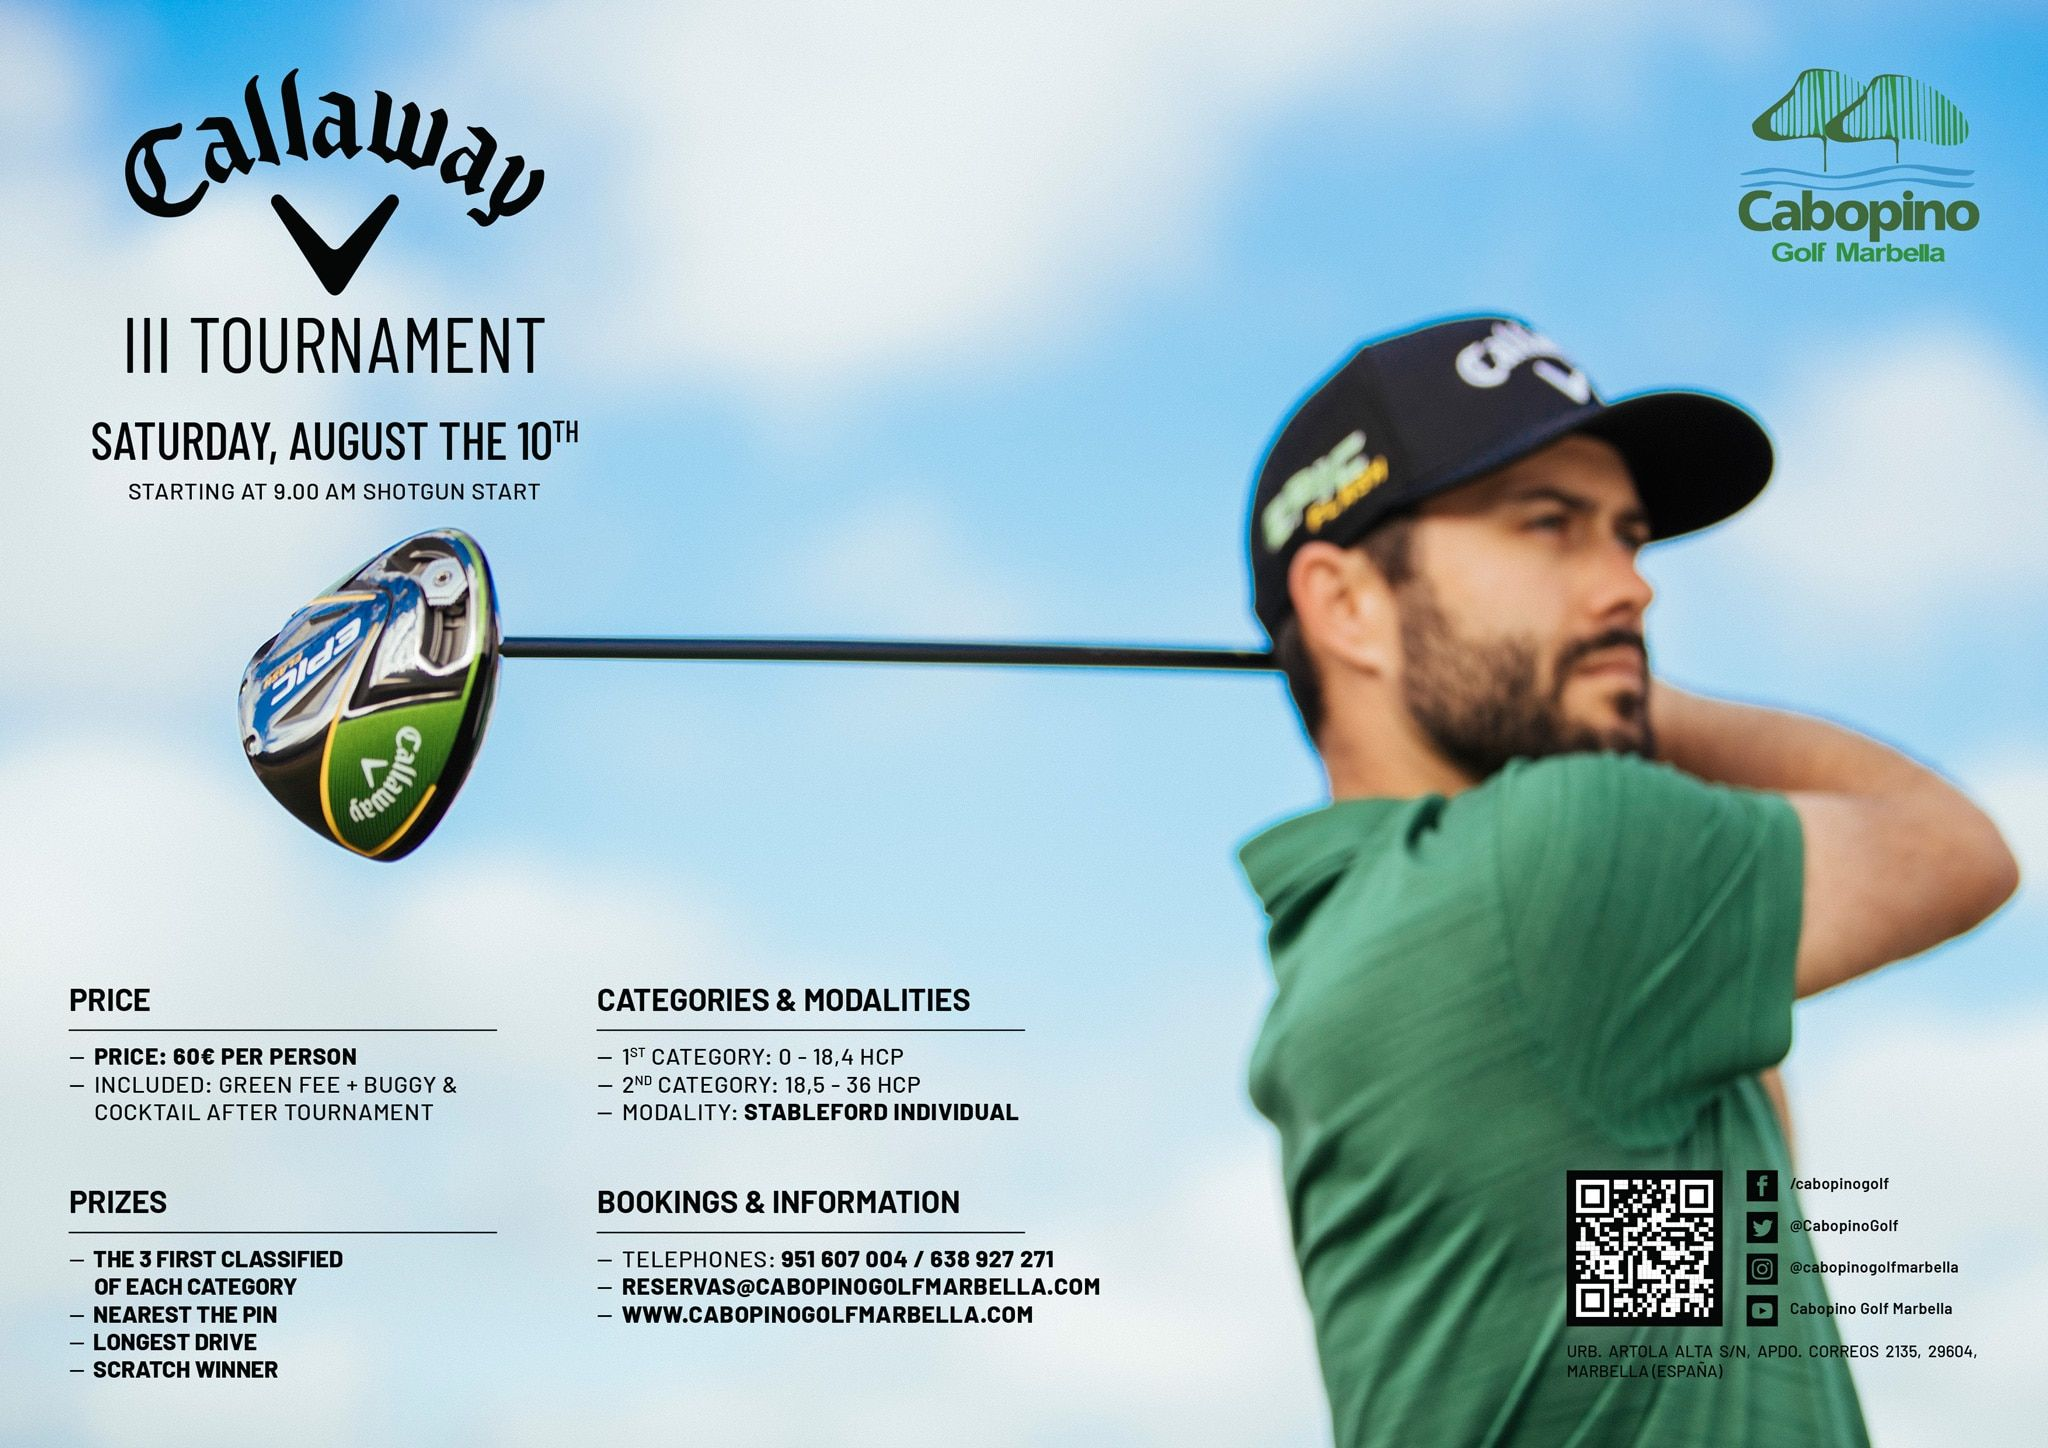 III Callaway Tournament